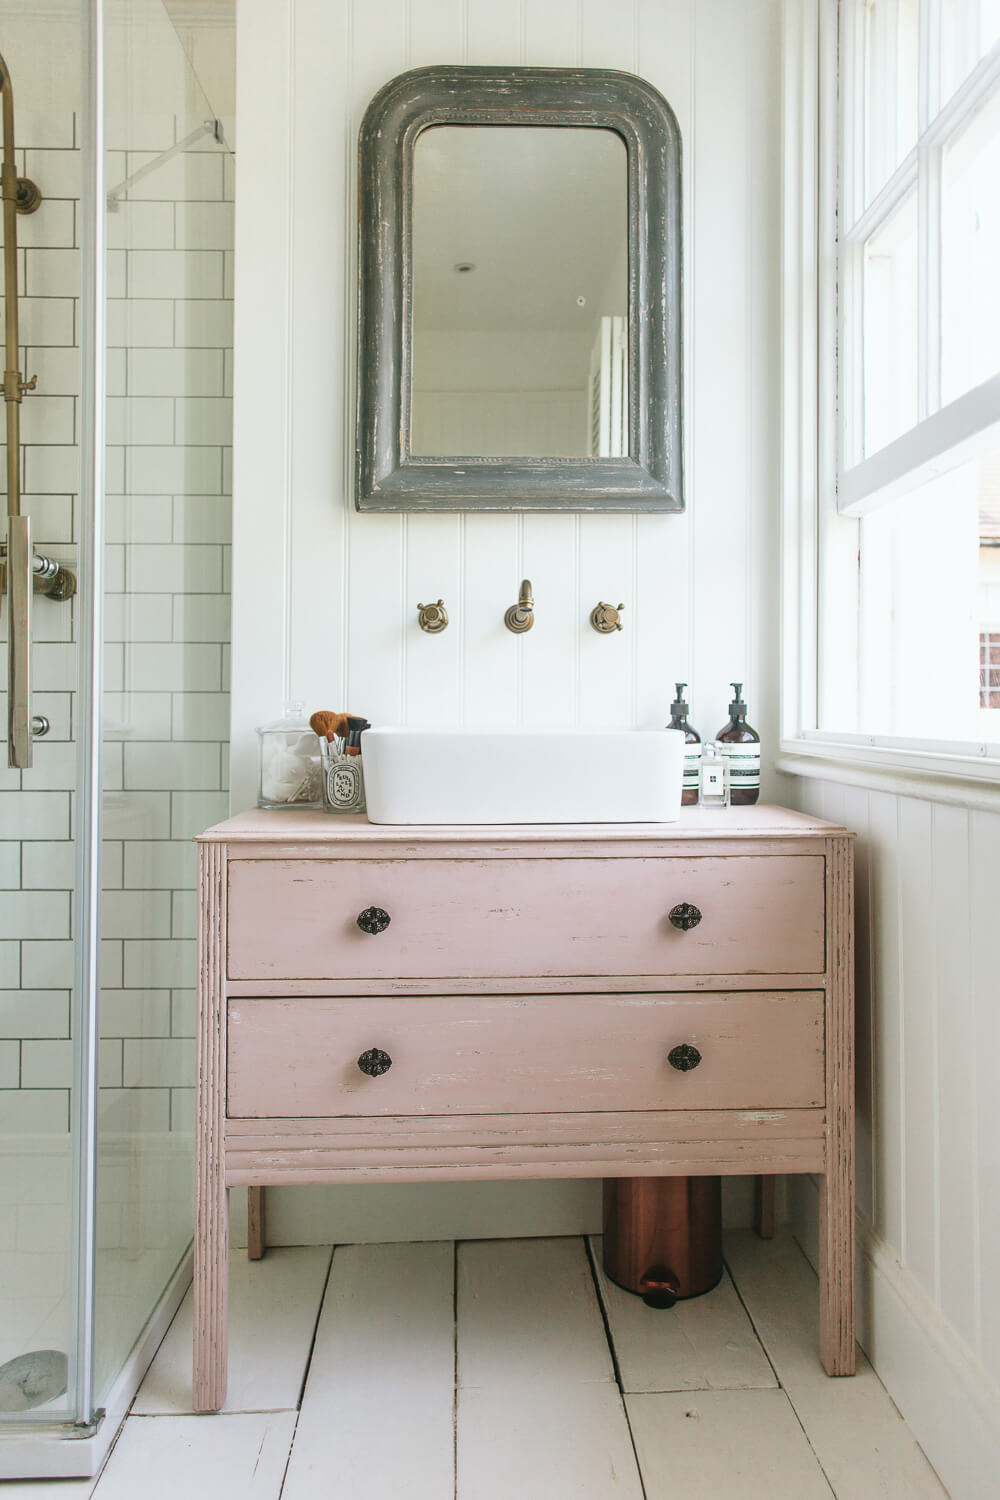 DIY Upcycled Dresser Bathroom Vanity